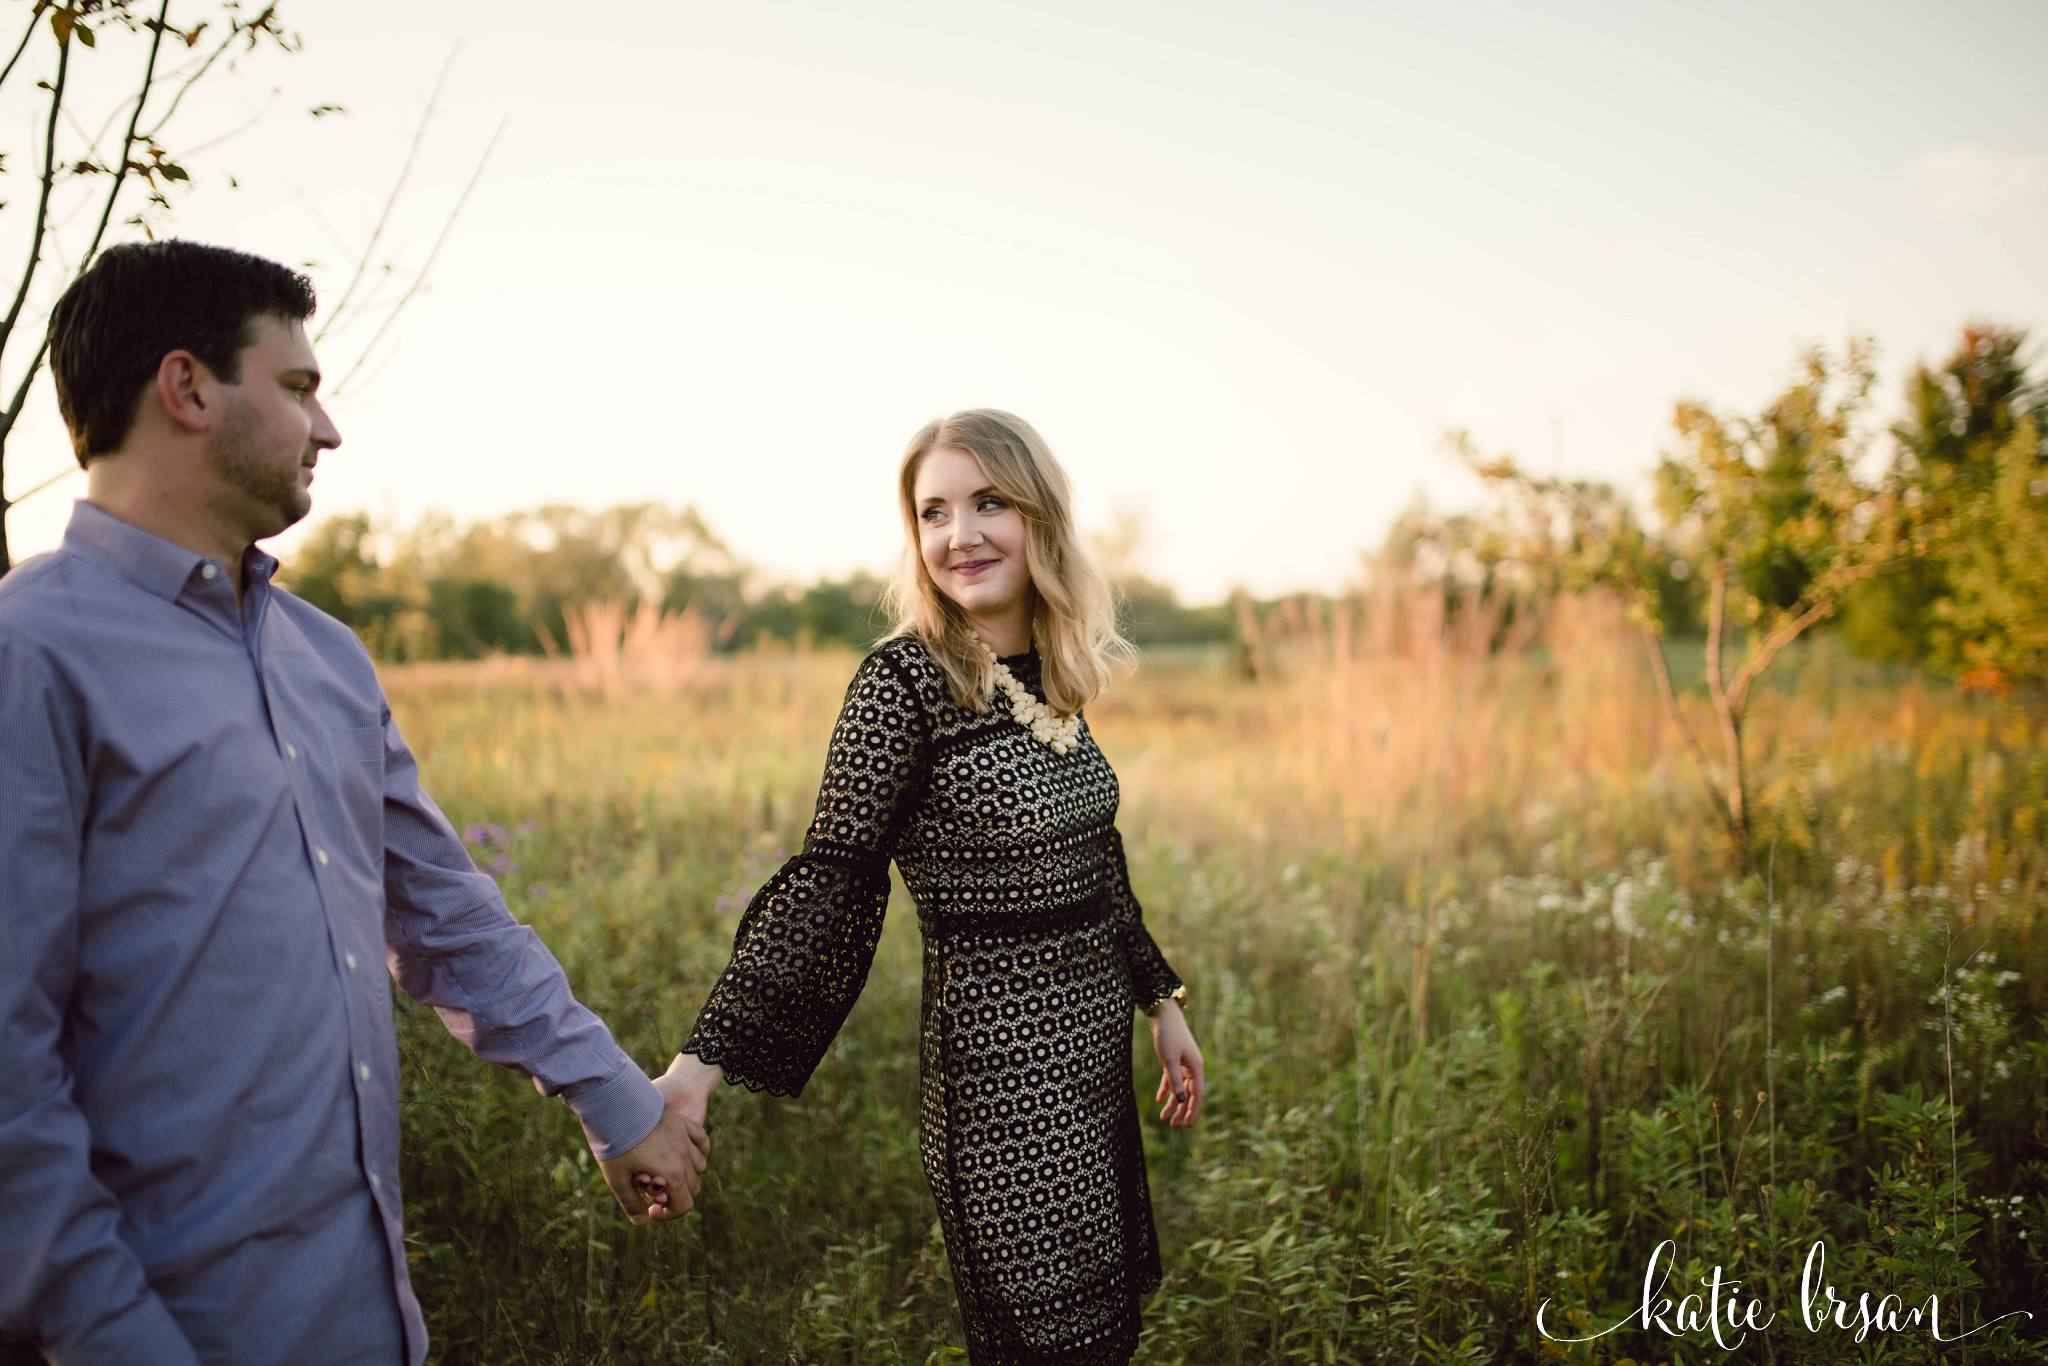 Mokena_EngagementSession_RuffledFeathers_Wedding_0959.jpg